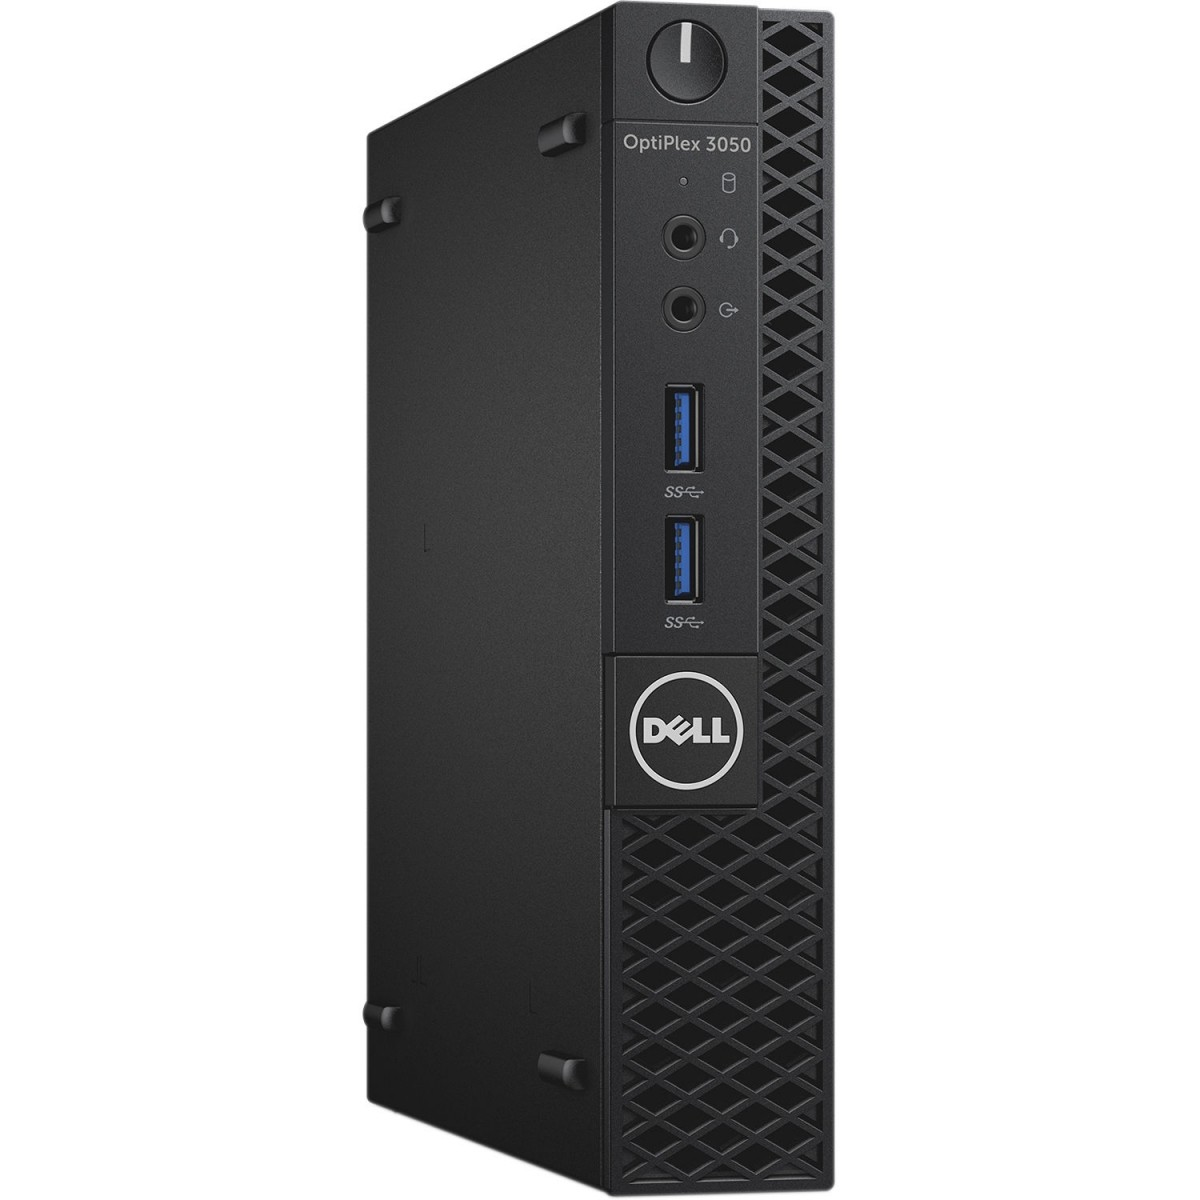 Cpu Dell Optiplex 3050 I3-7100 3.9Ghz|4Gb|500Gb|W10Pro